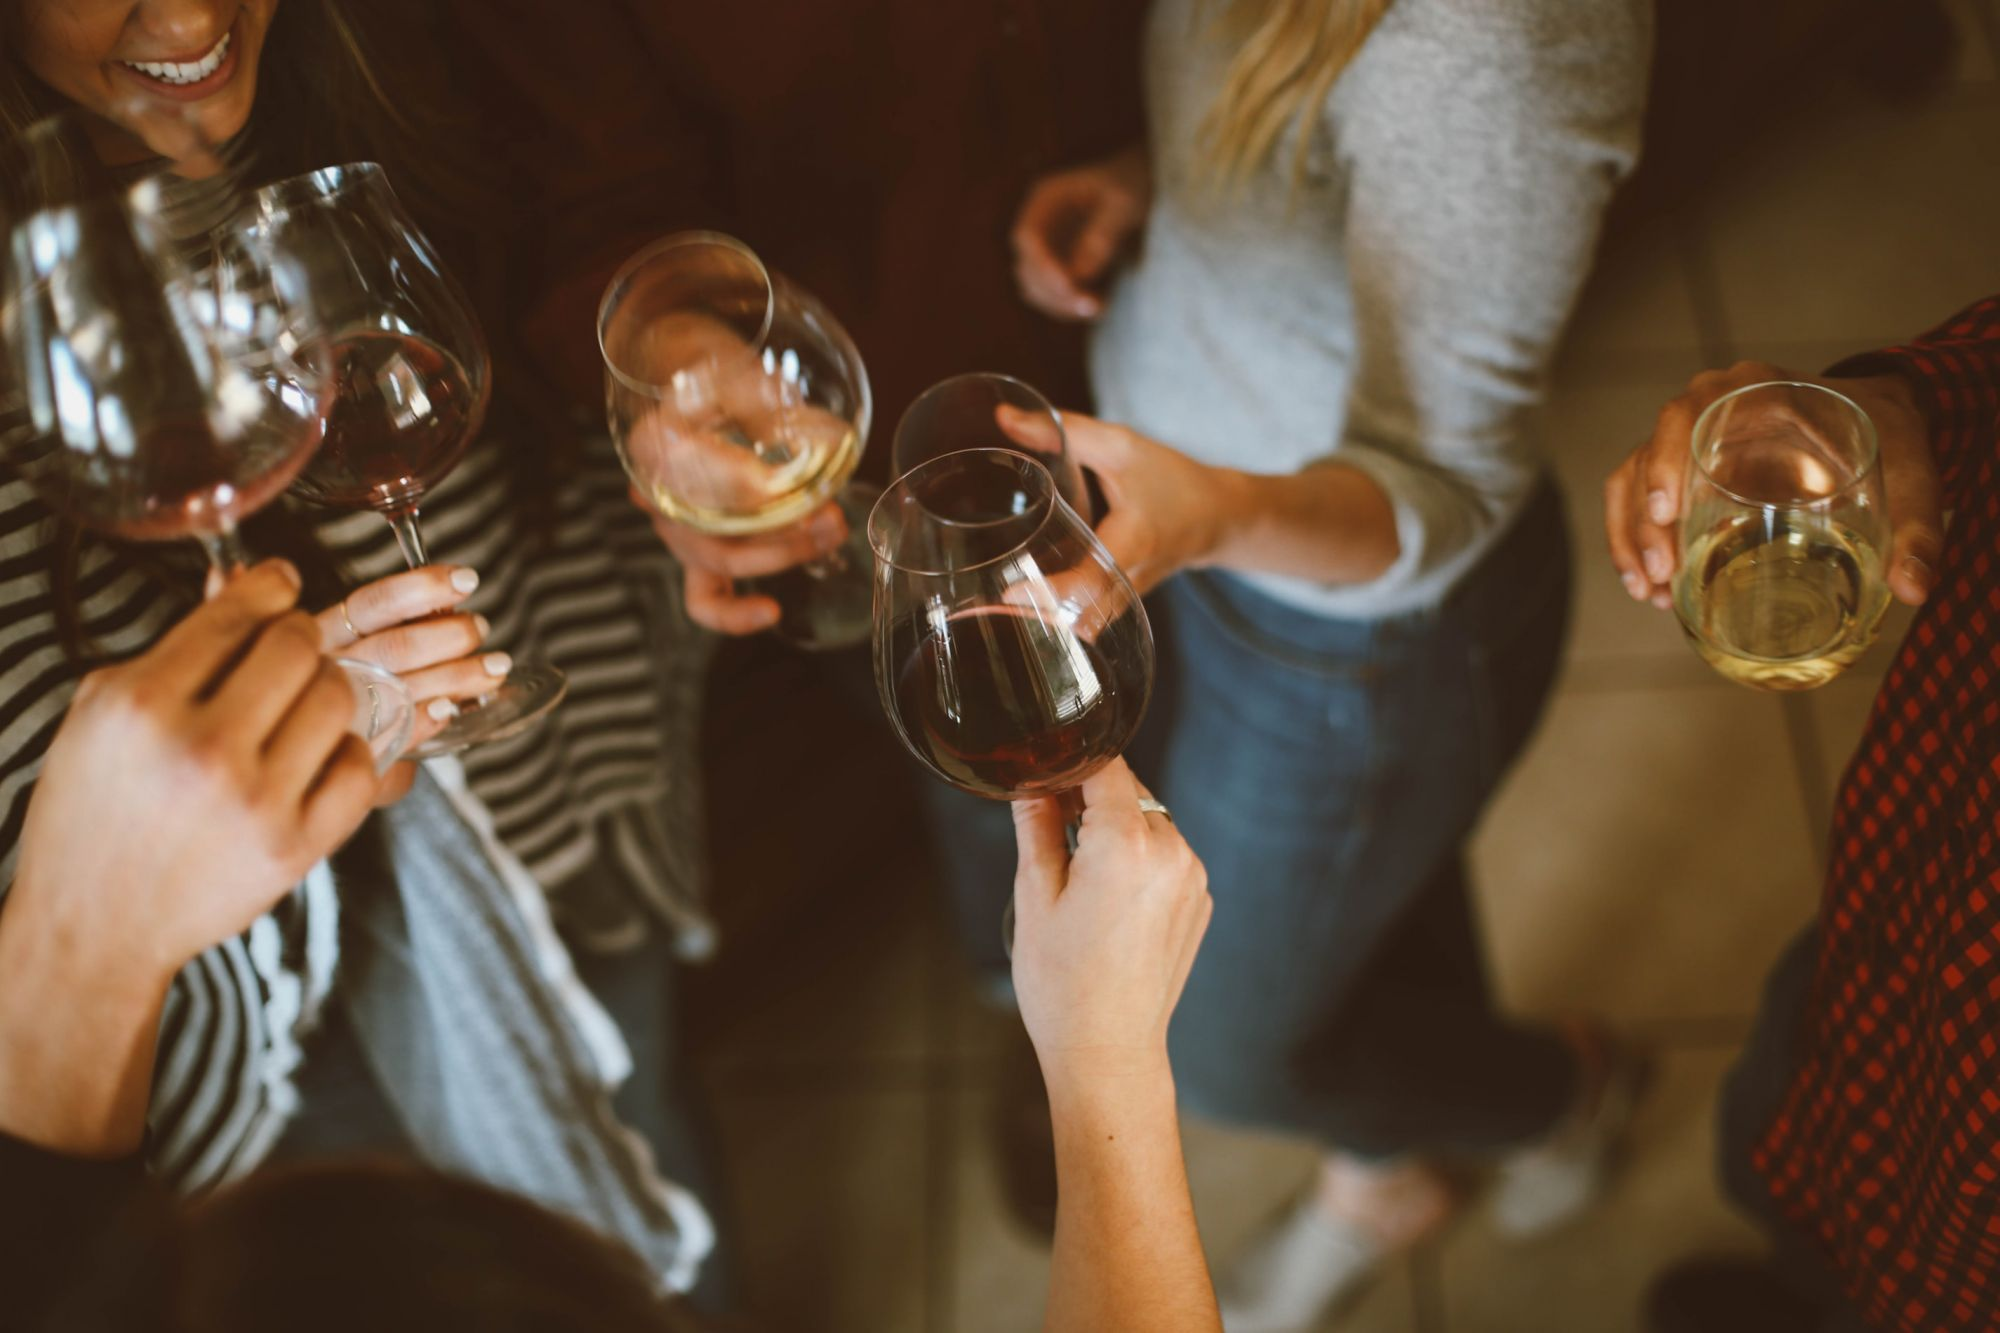 3 Ways To Make Your Wine Consumption More Sustainable This Holiday Season